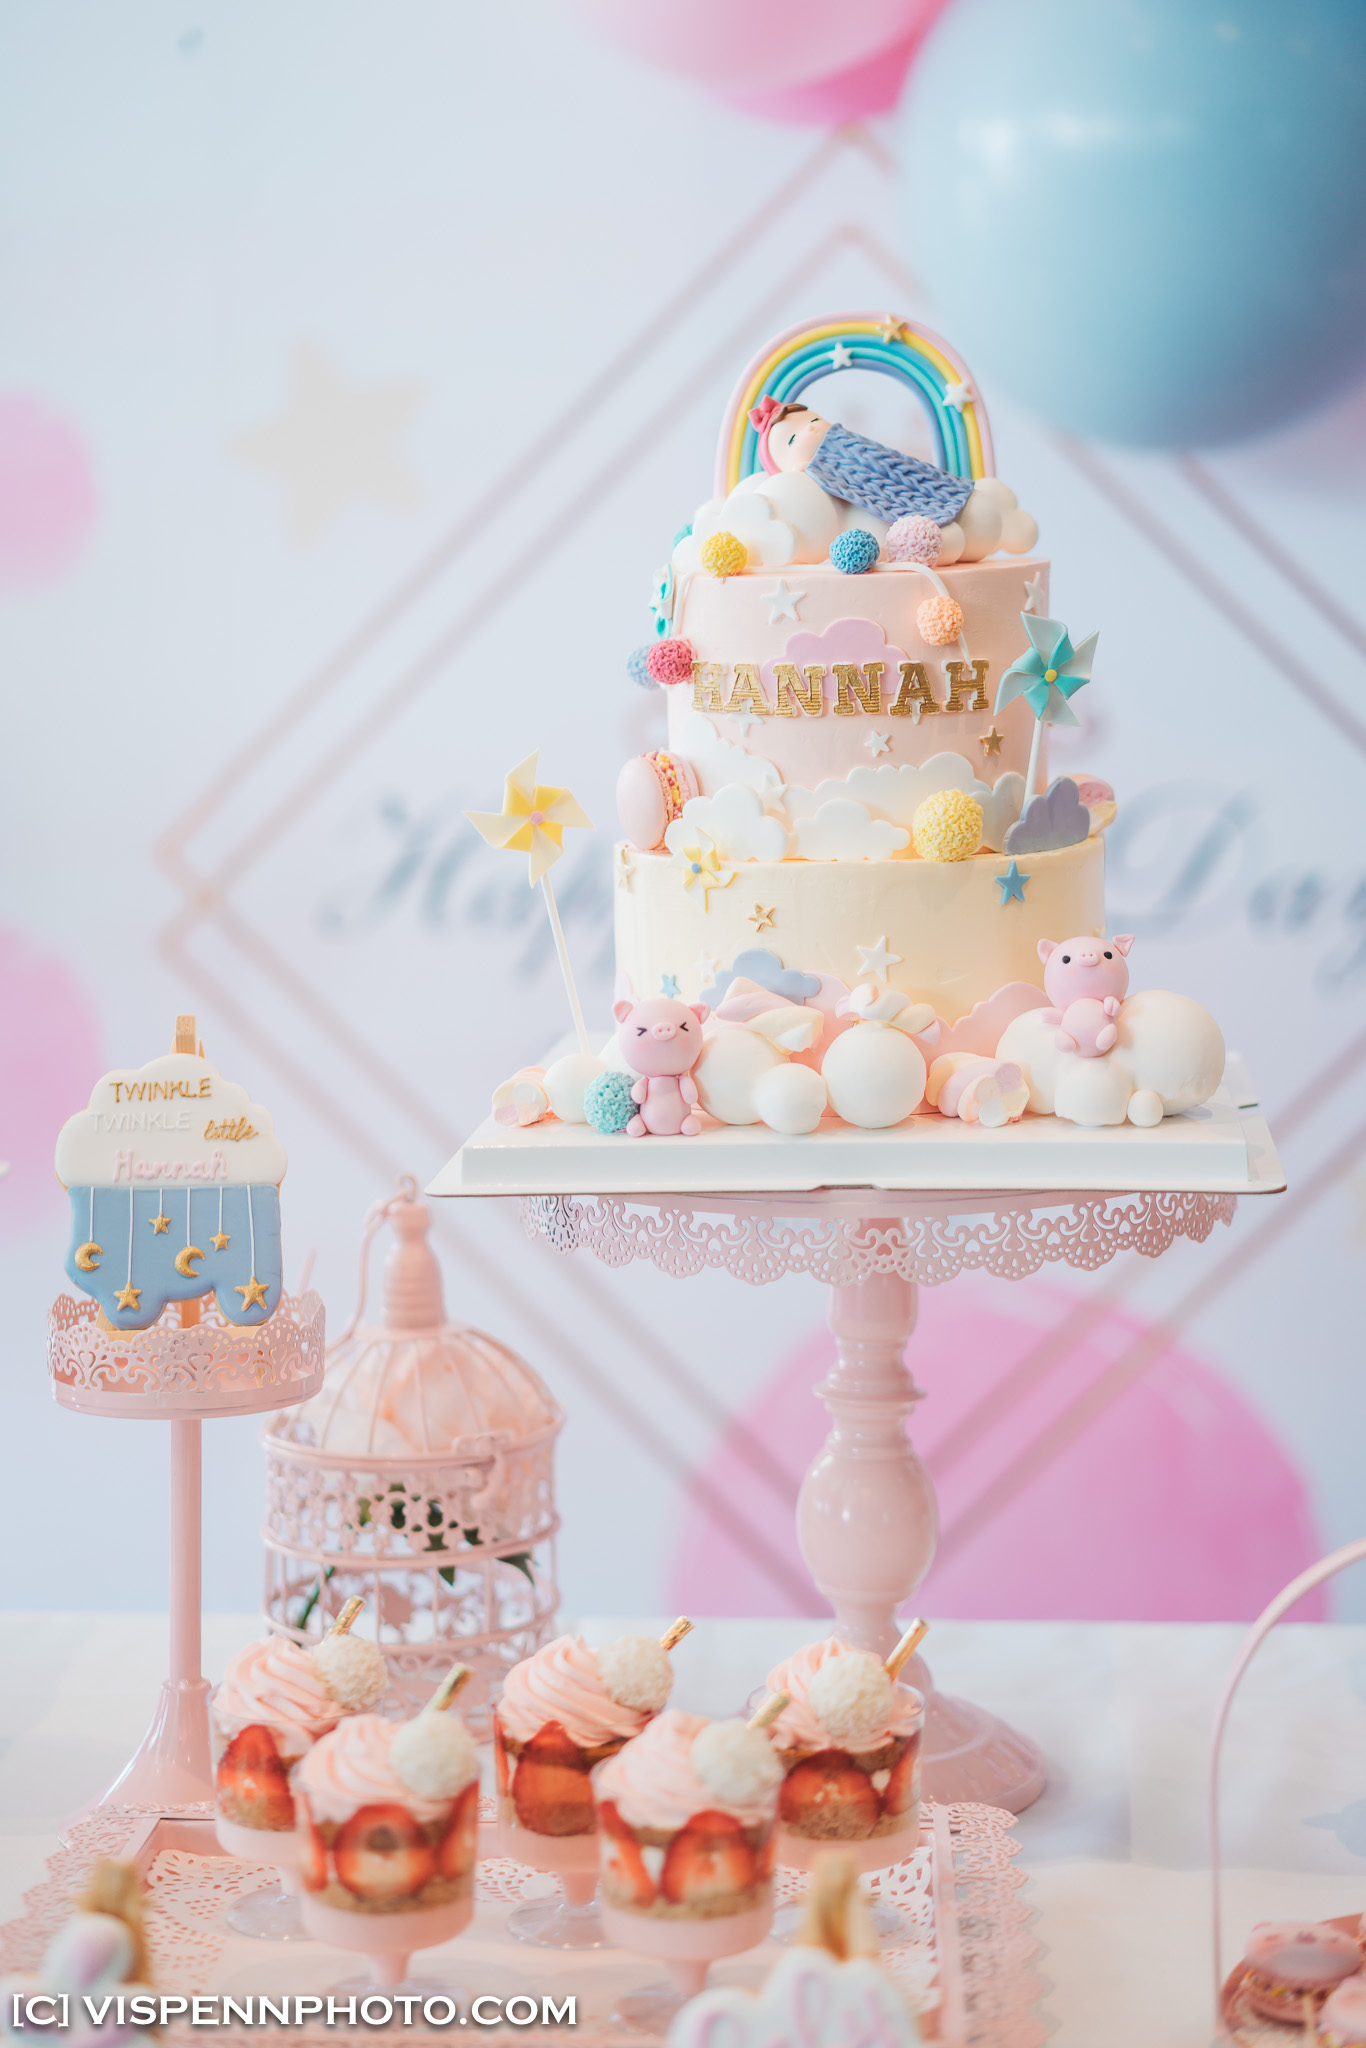 Melbourne Baby Family Birthday Party Photographer 墨尔本 百日宴 满月宴 周岁宴 摄影 VISPENN Gracie 0018 Sony VISPENN